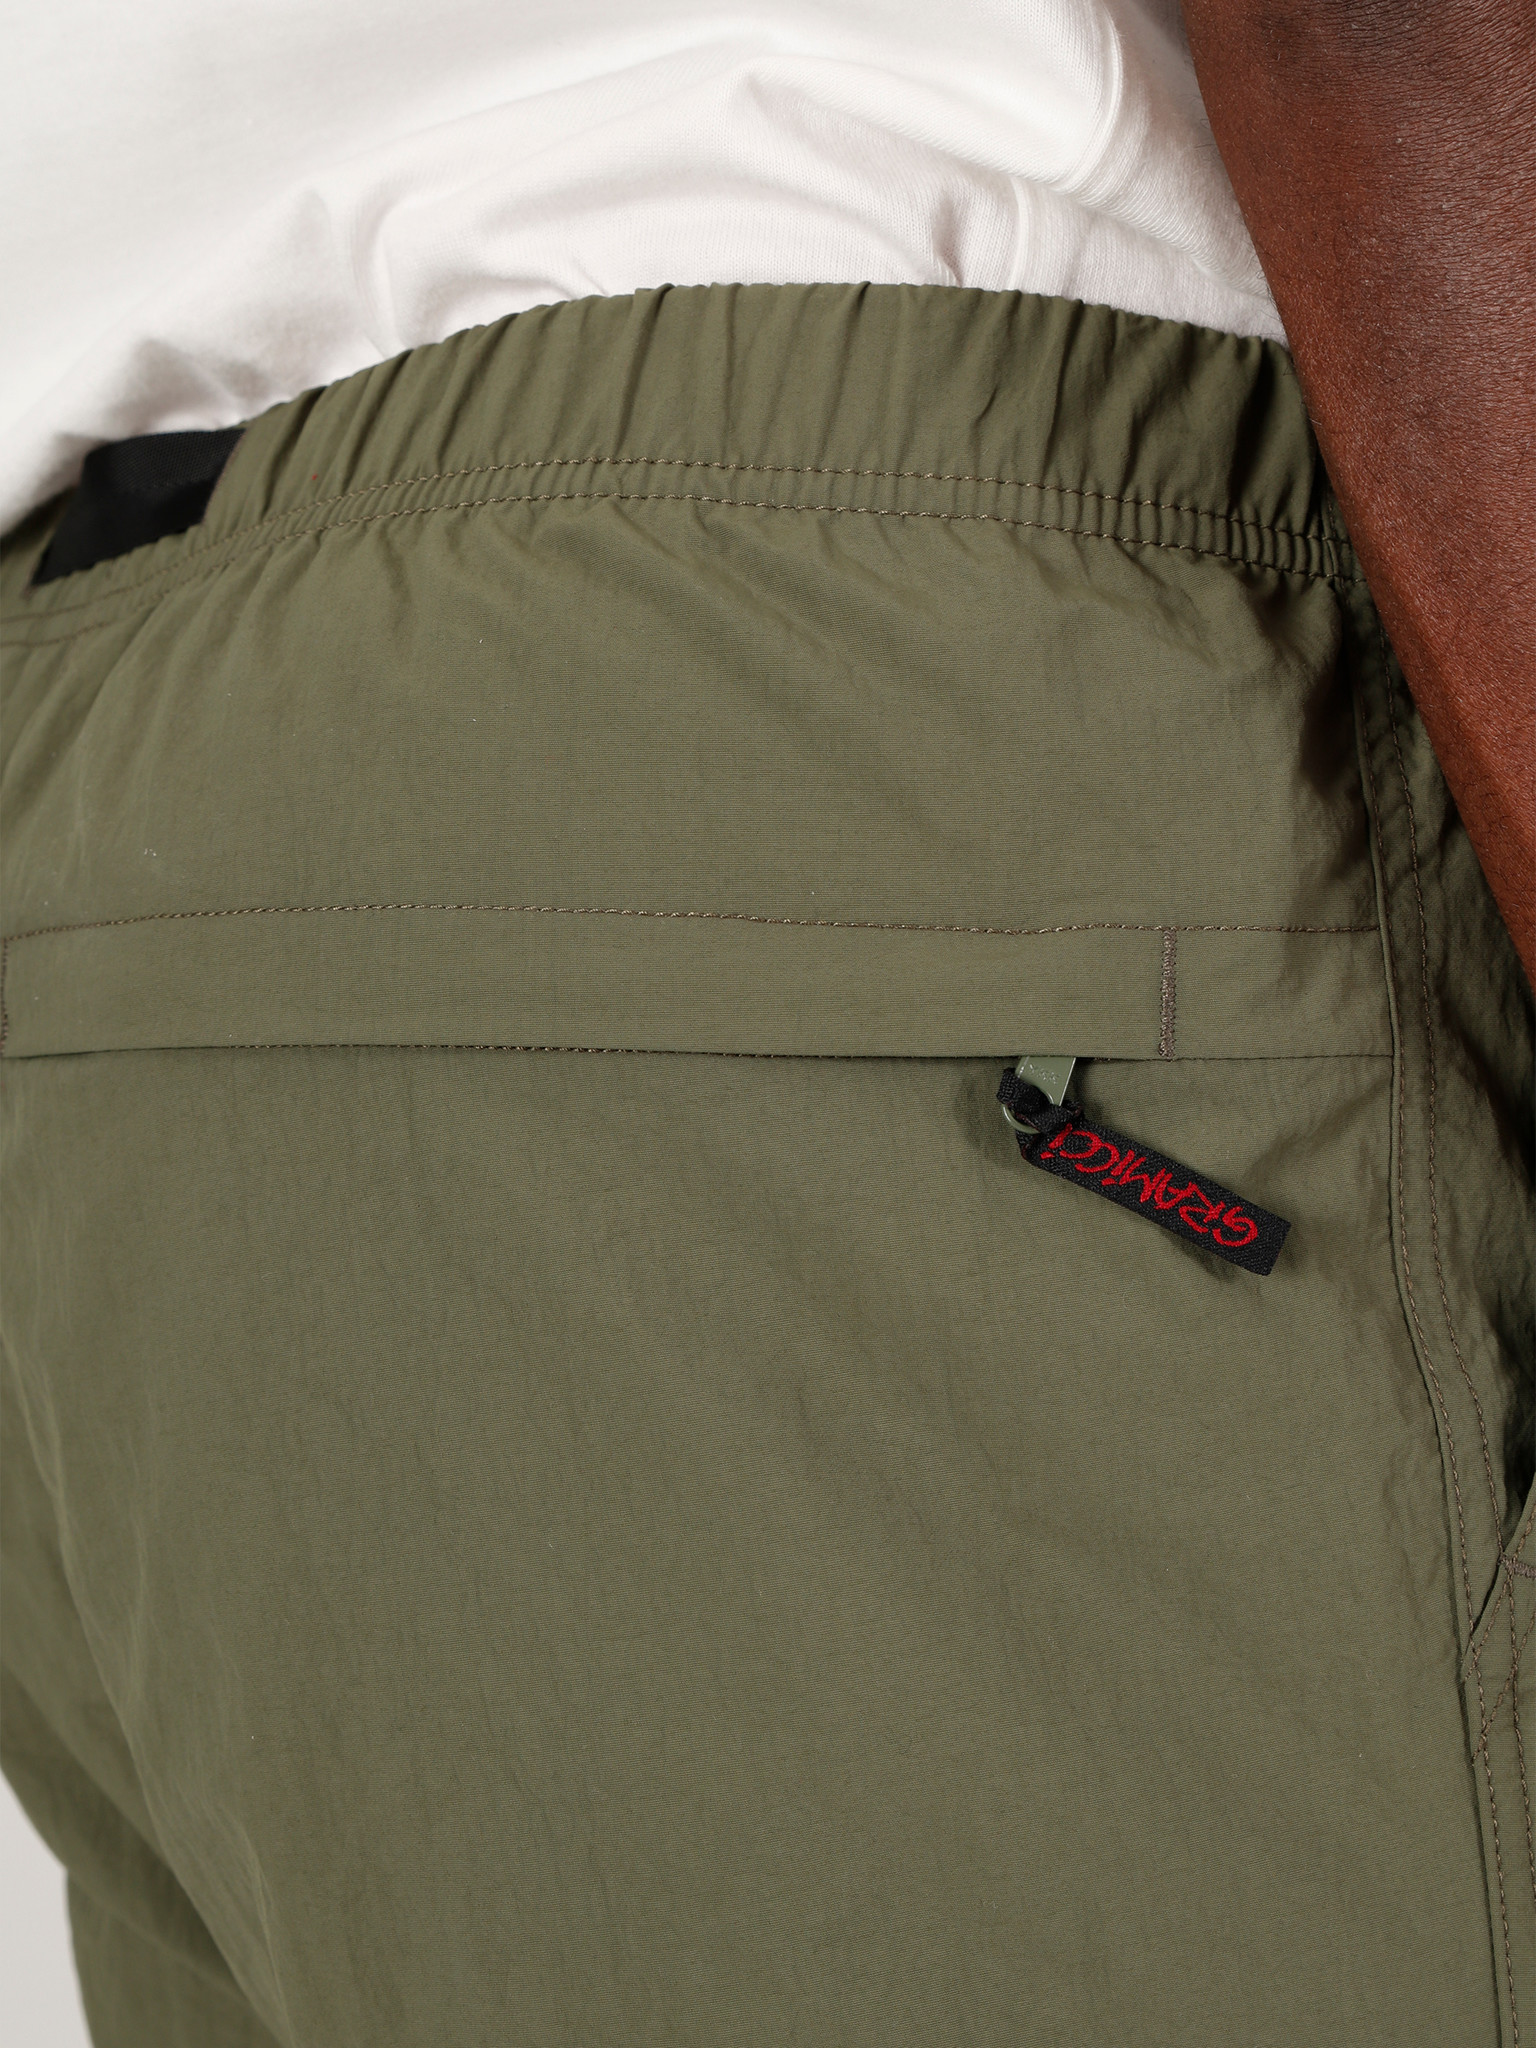 Gramicci Gramicci Shell Packable Shorts Olive GUP-20S037